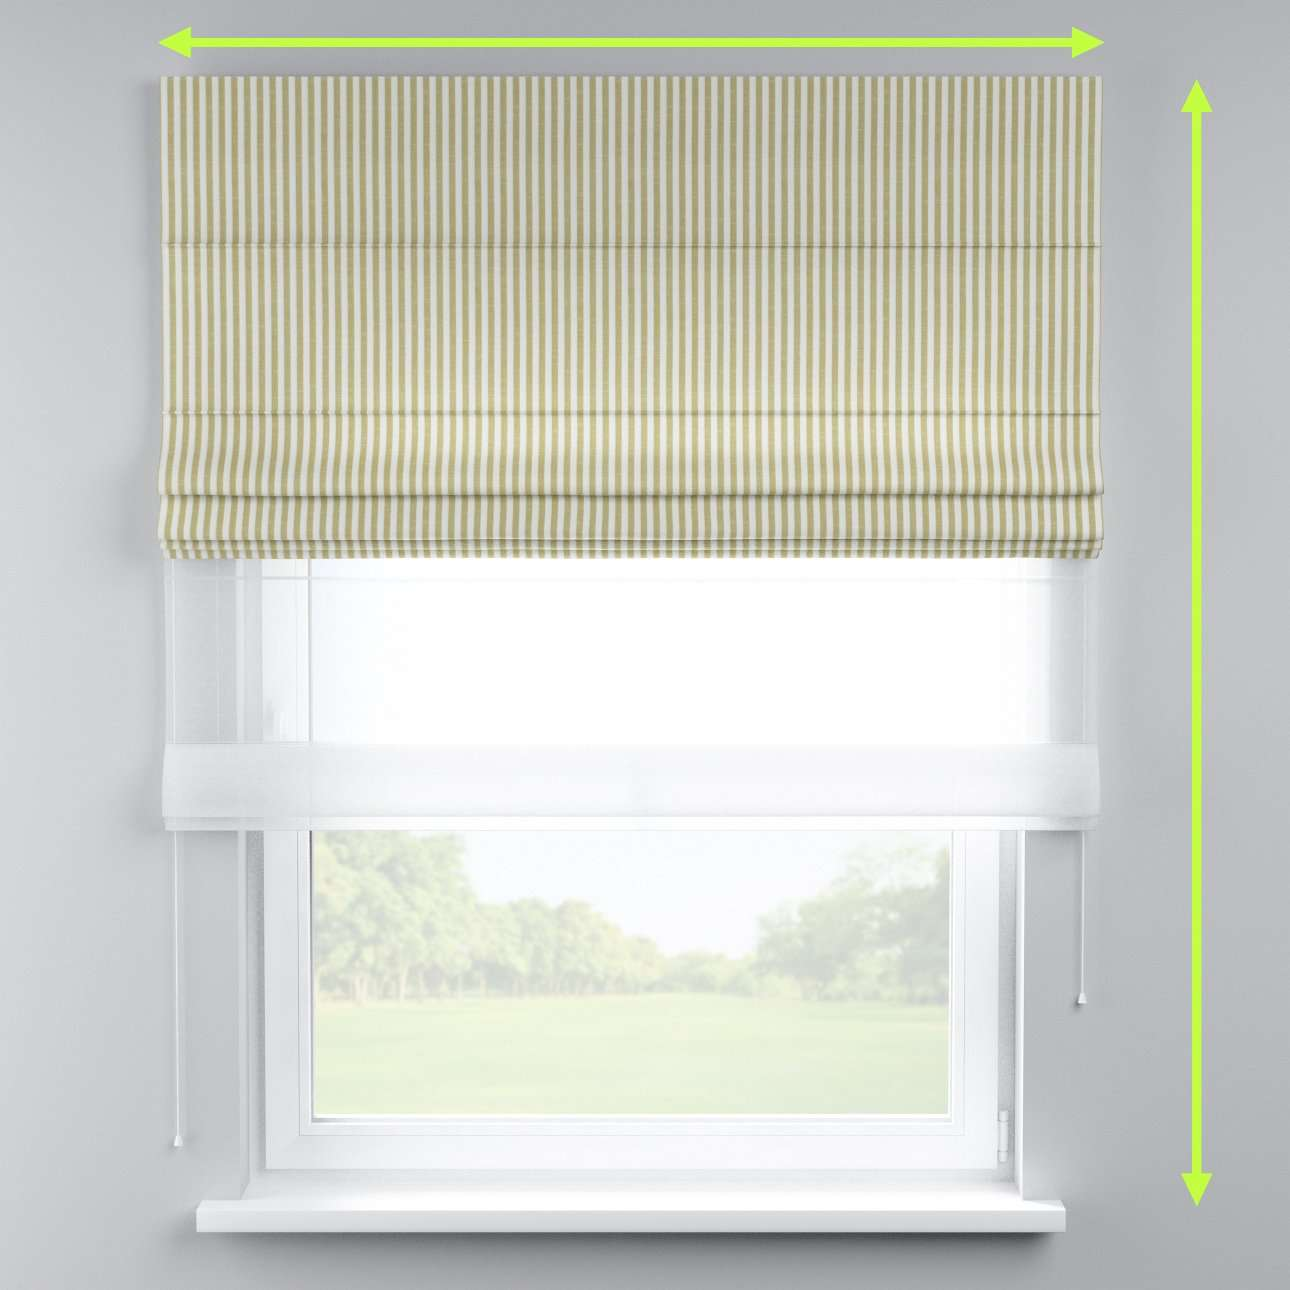 Voile and fabric roman blind (DUO II) in collection Cardiff, fabric: 136-21